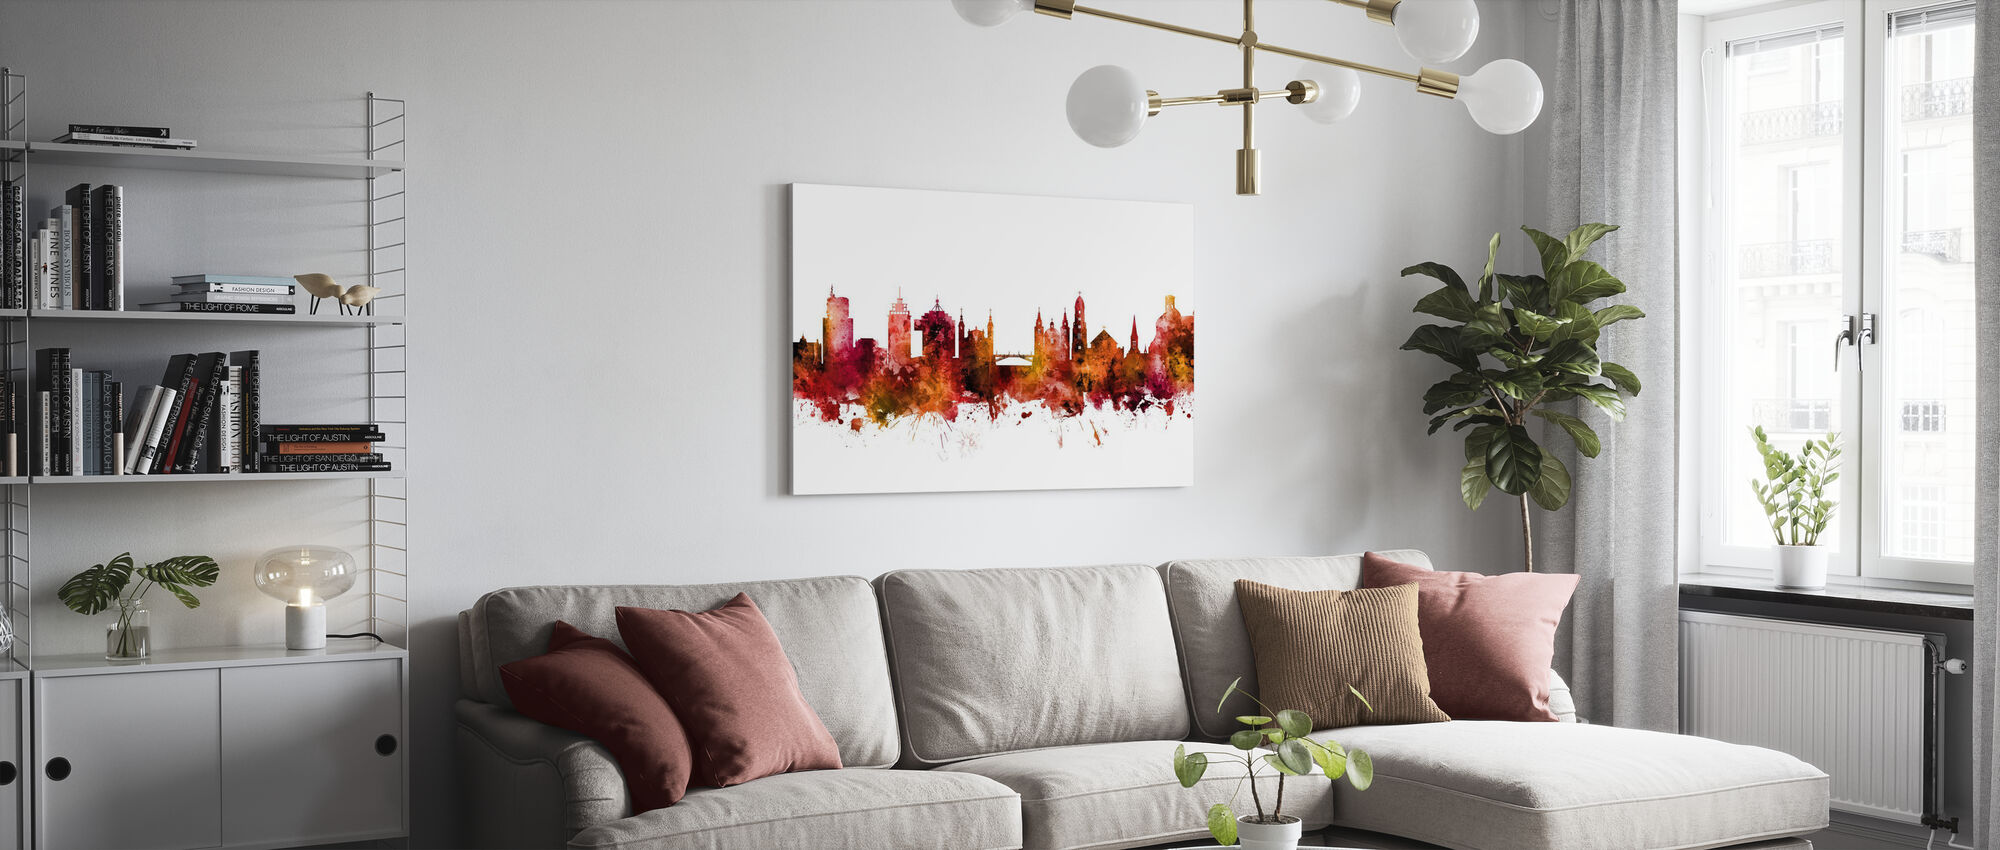 Ljubljana Solvenia Skyline - Canvas print - Living Room